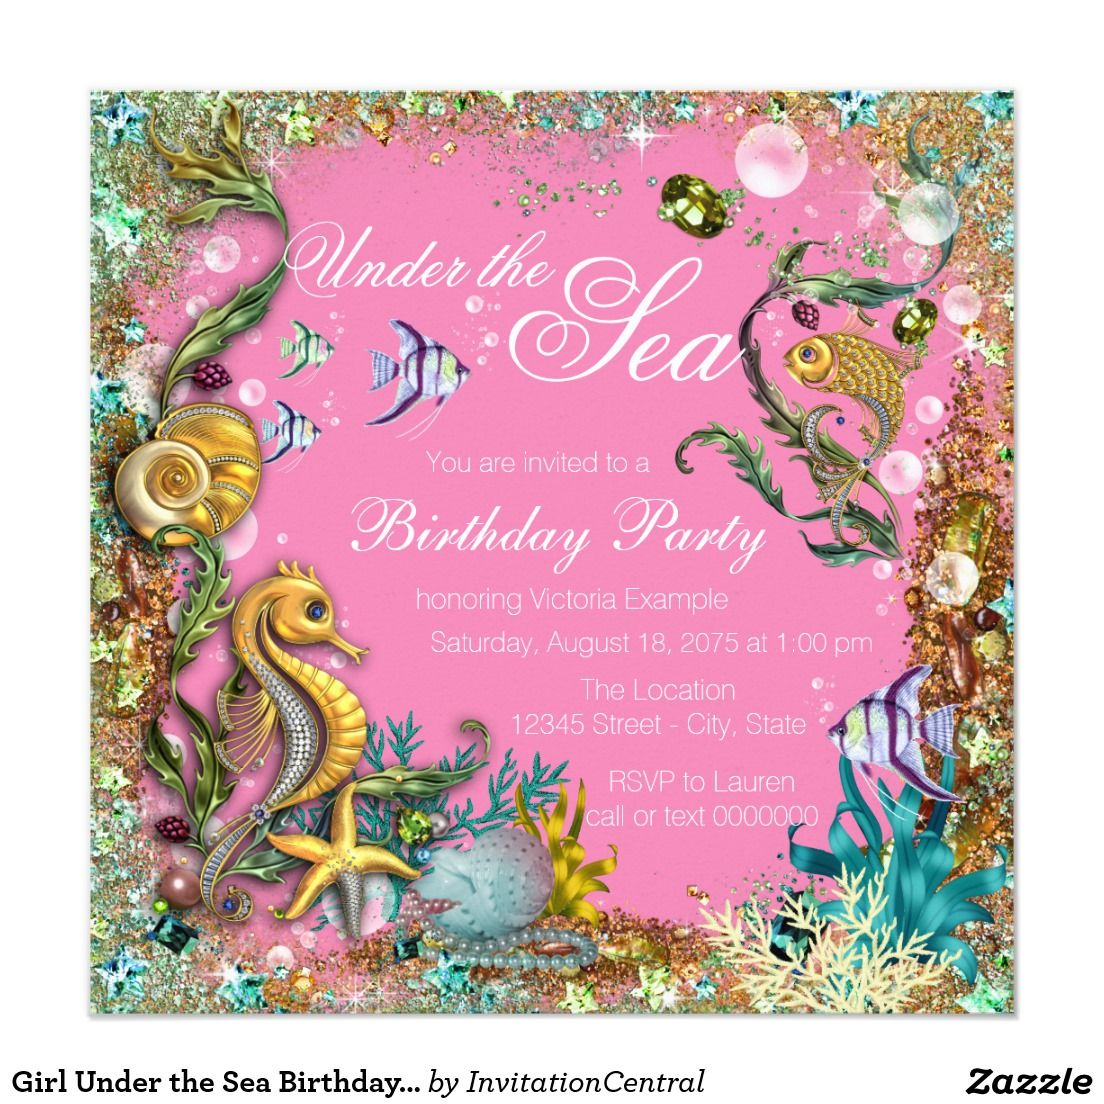 Girl under the sea birthday party invitation baby delvalle baby